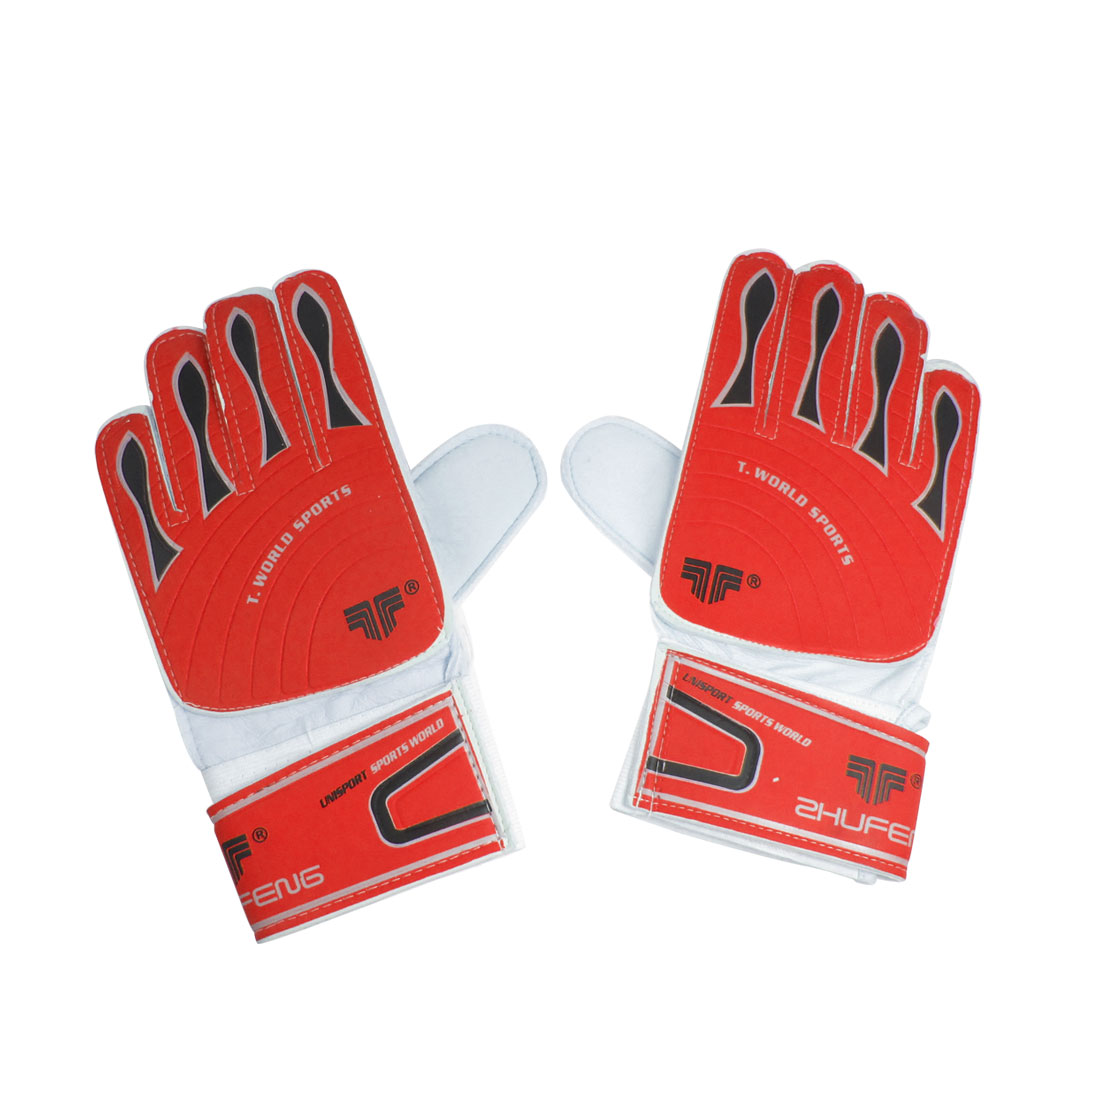 2 Pcs Hook Loop Fastener Latex Palm Nonslip Gloves Red for Goalkeeper